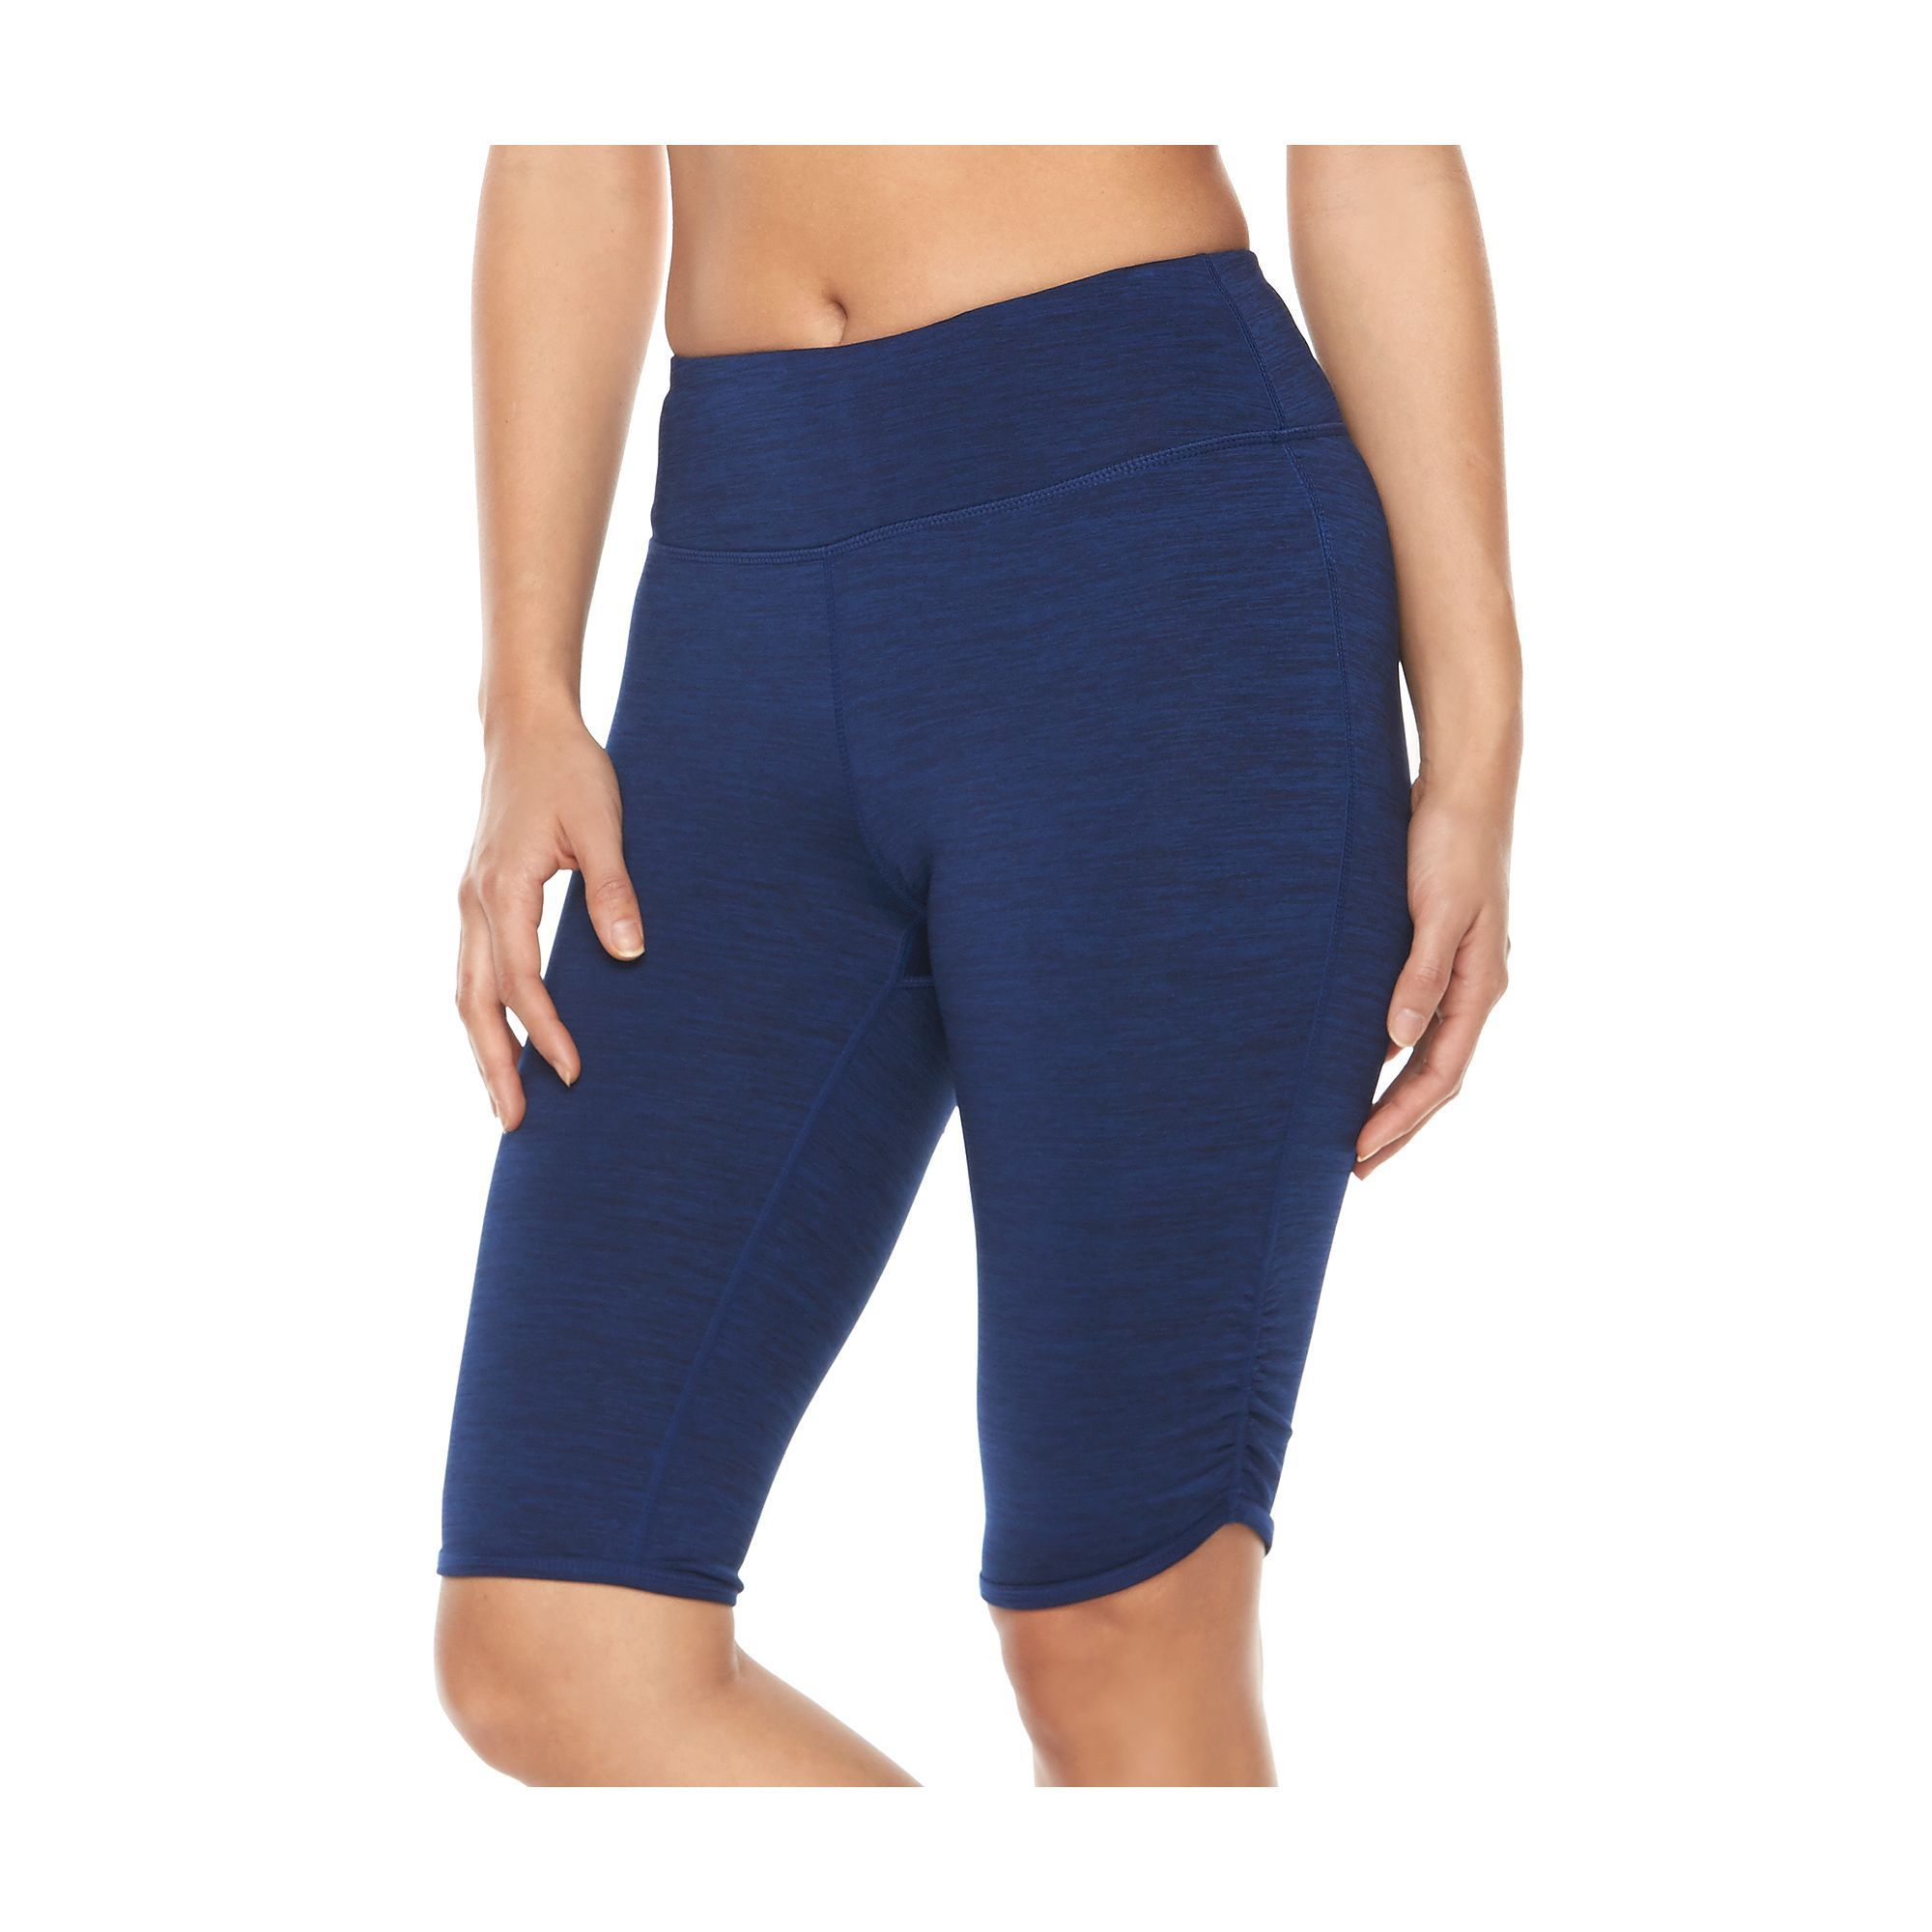 ee6ca926ba Women's Gaiam Om Pedal Pusher Yoga Shorts | Products | Yoga shorts ...